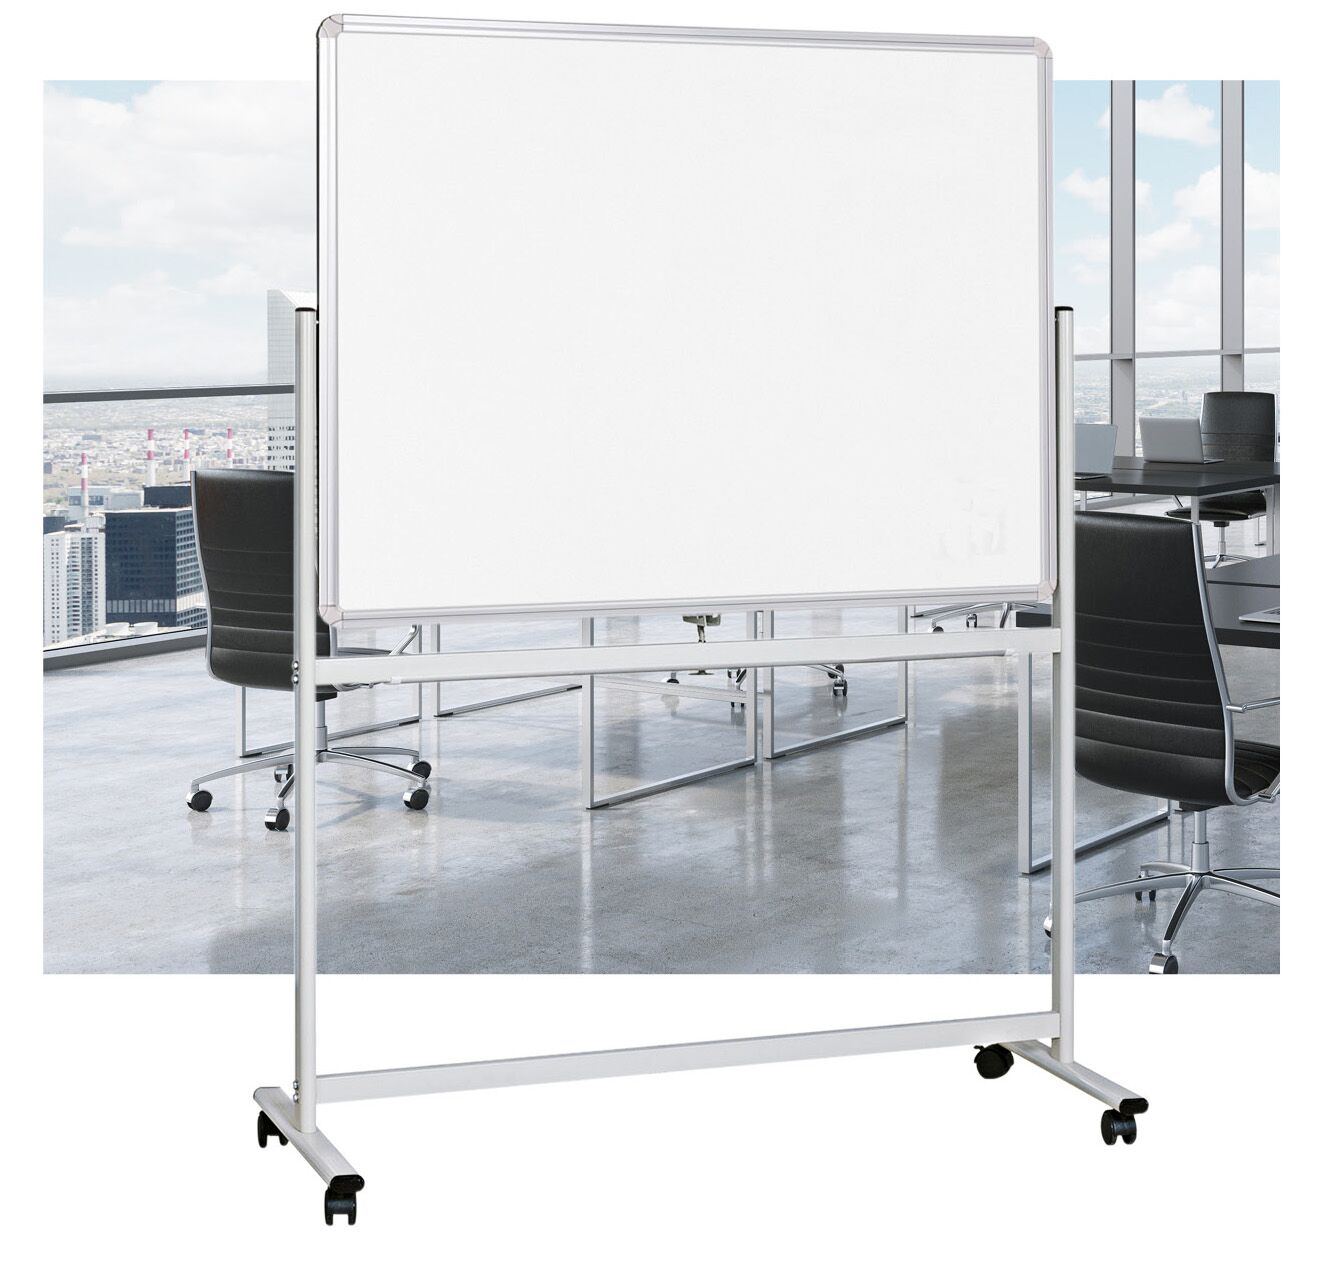 Mobile Chilli Whiteboard